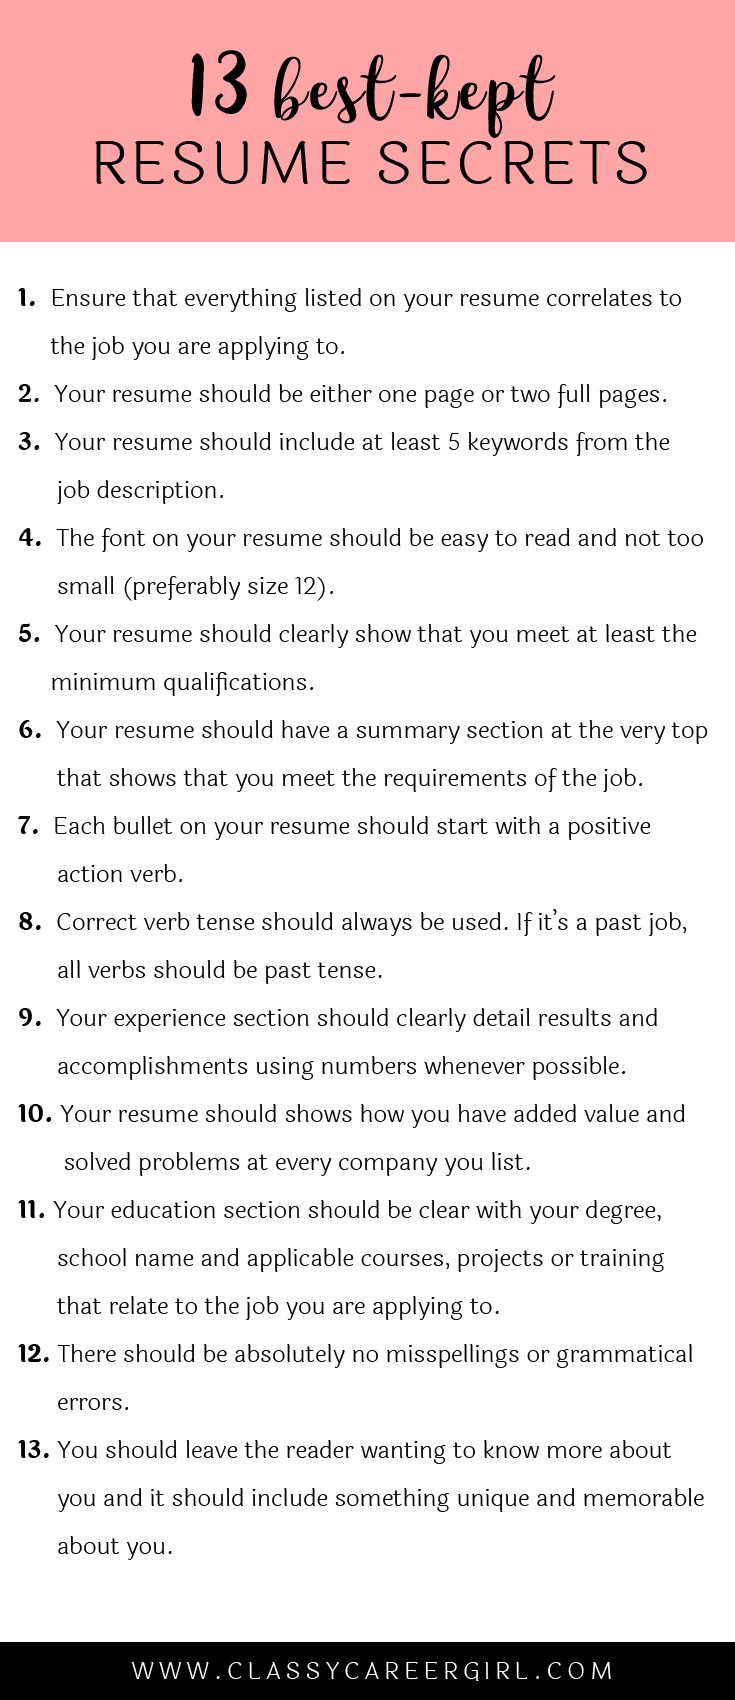 Opposenewapstandardsus  Scenic  Ideas About Resume On Pinterest  Cv Format Resume Cv And  With Fascinating Some Hiring Managers Will Toss Your Resume Out If You Dont Know These  With Attractive Resume Style Also Sample Teaching Resume In Addition How To Type Resume And Pages Resume Template As Well As How To Make A Resume For Job Application Additionally Best Resume Service From Pinterestcom With Opposenewapstandardsus  Fascinating  Ideas About Resume On Pinterest  Cv Format Resume Cv And  With Attractive Some Hiring Managers Will Toss Your Resume Out If You Dont Know These  And Scenic Resume Style Also Sample Teaching Resume In Addition How To Type Resume From Pinterestcom